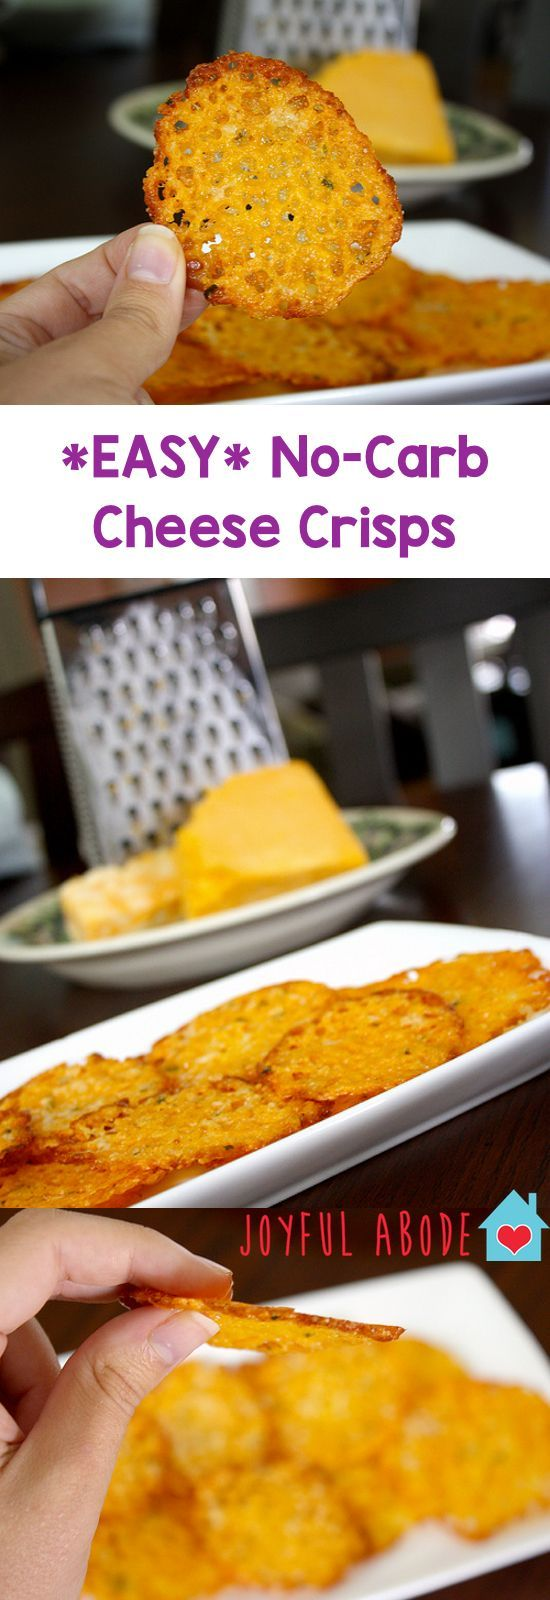 If you're thinking about buying cheese crisps to snack on, don't. It's so easy to make your own! No mess, and it only takes a few minutes. These are GREAT!  @ReTweetNGro